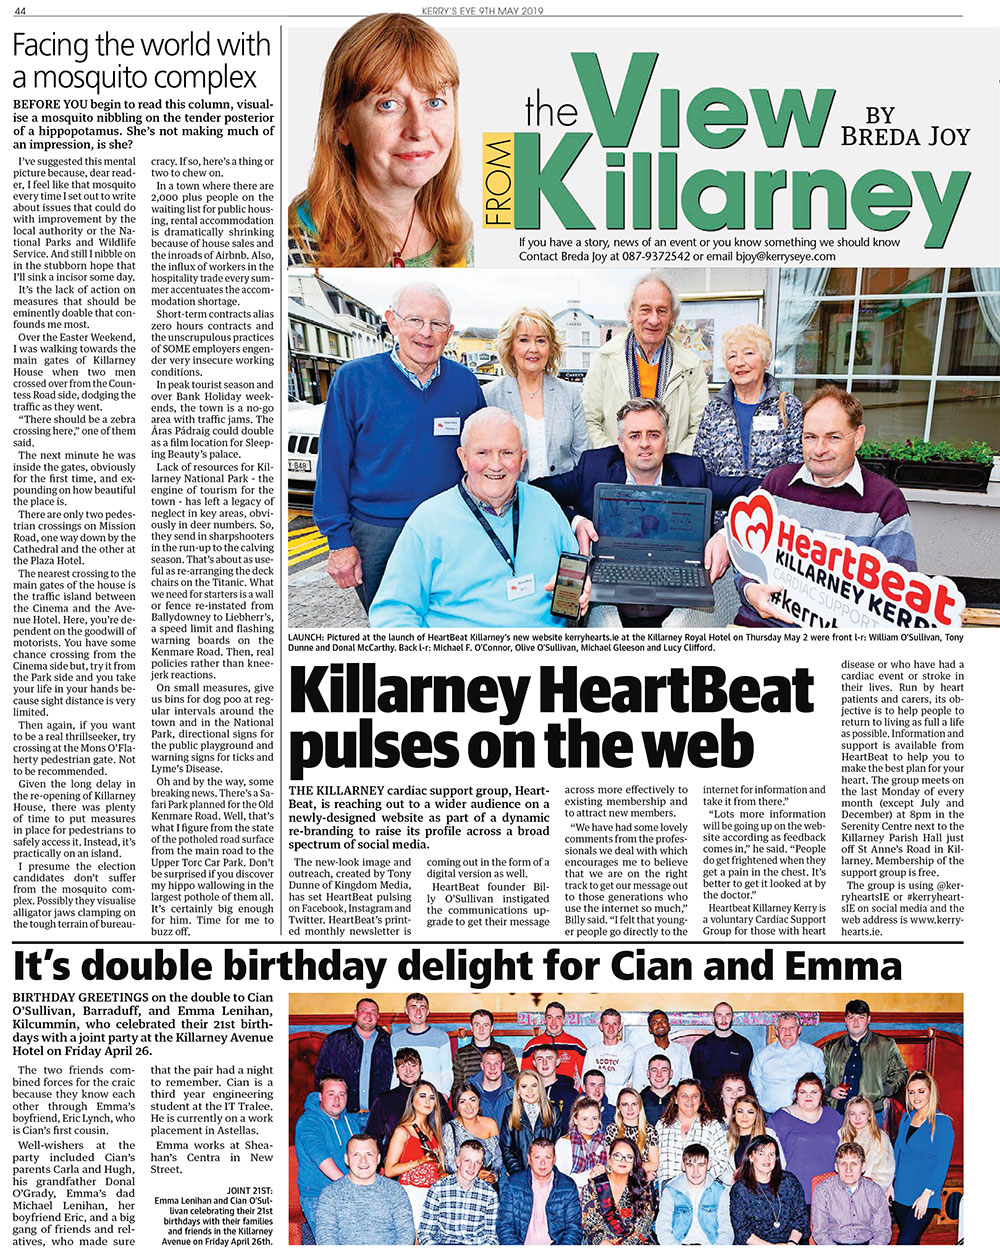 Article in the Kerry's Eye Newspaper 9-5-19